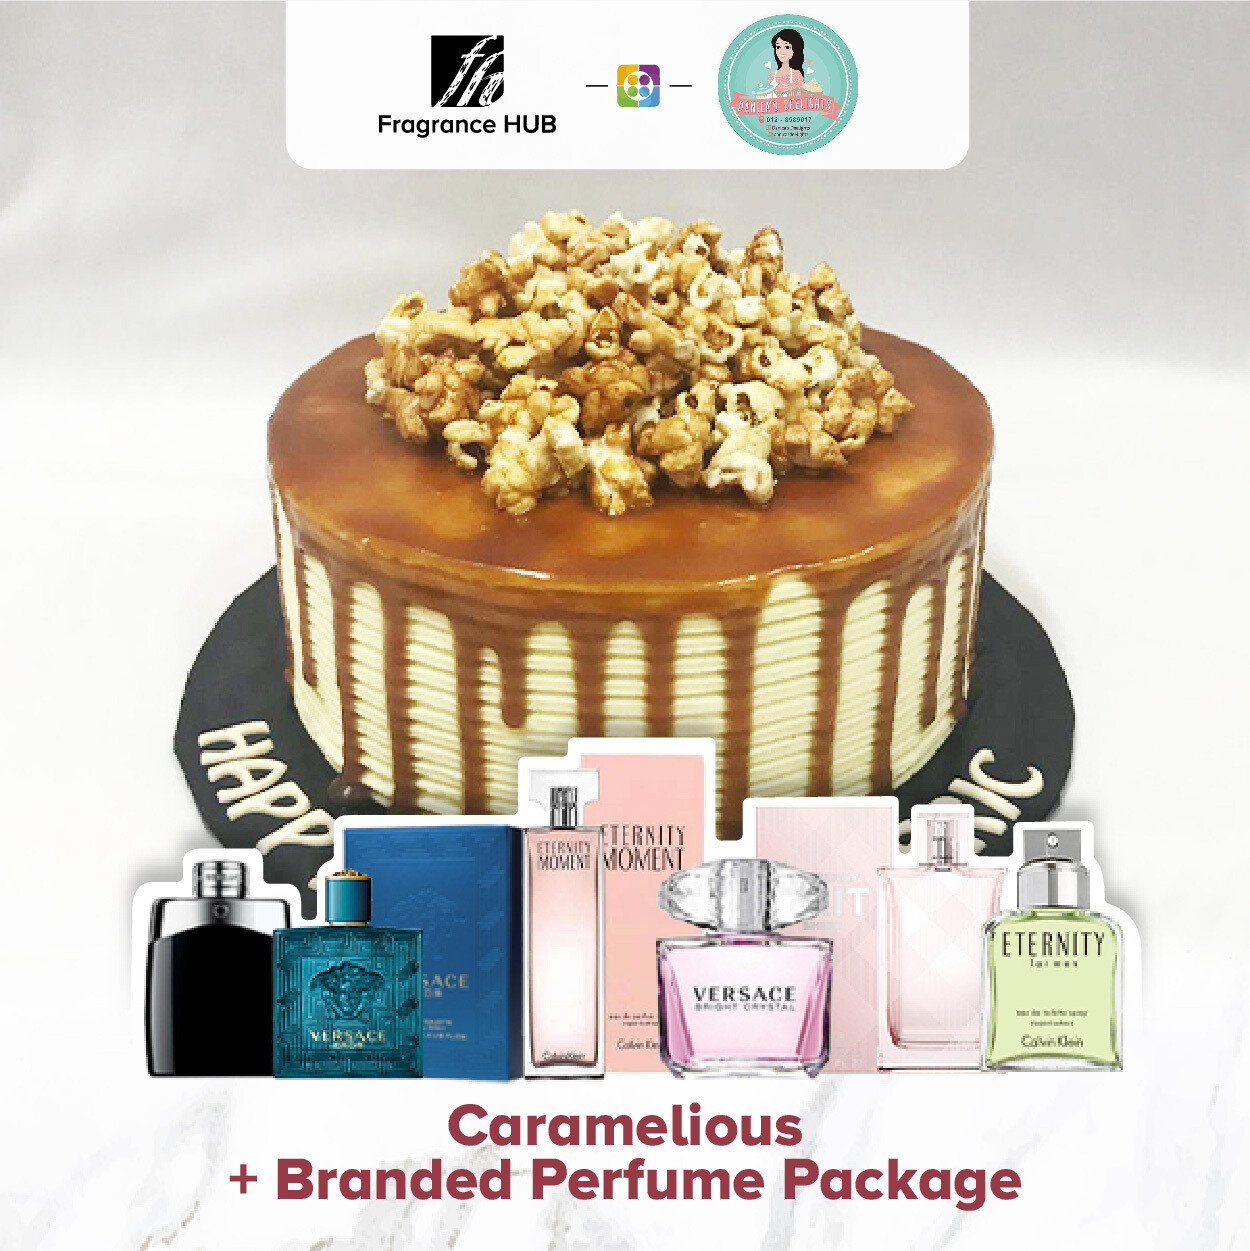 Caramelious + Fragrance Hub Branded Perfume (By: Danica's Delight from KL)